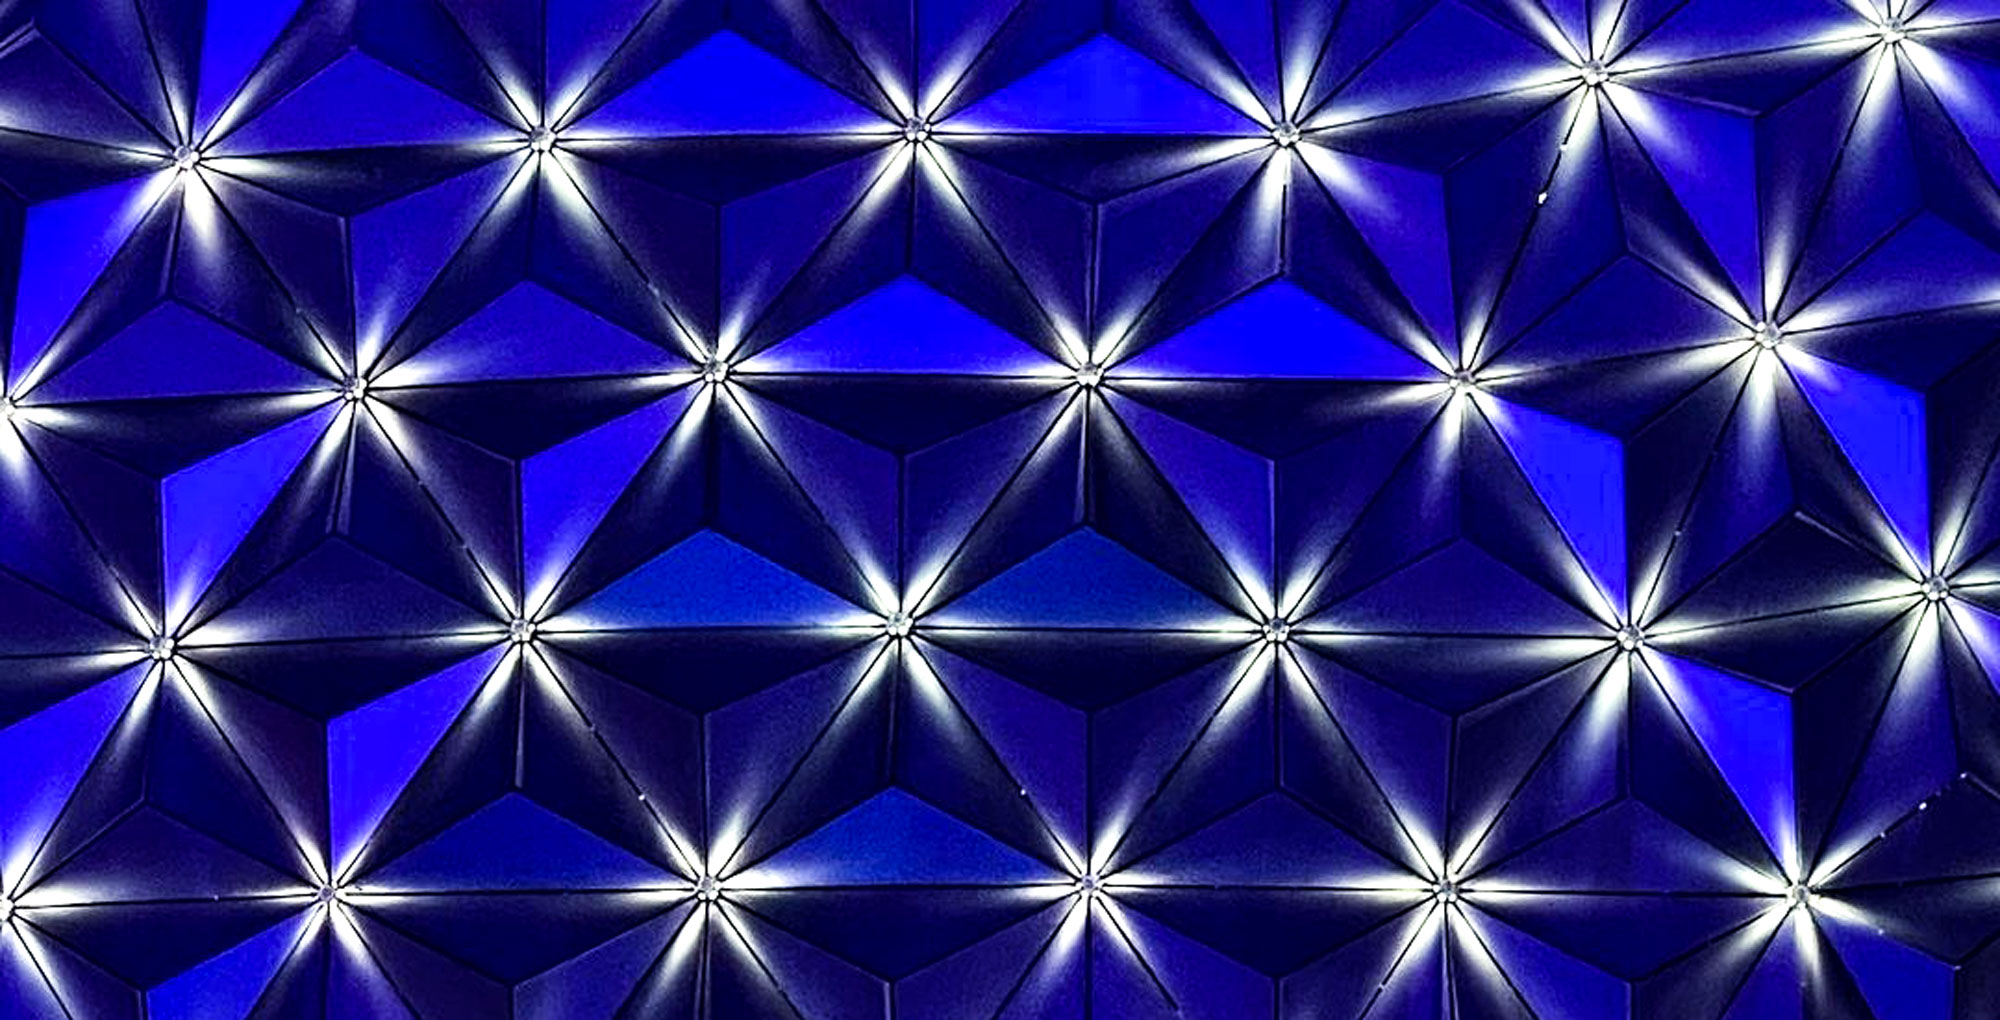 Spaceship Earth's new lights glow bright.